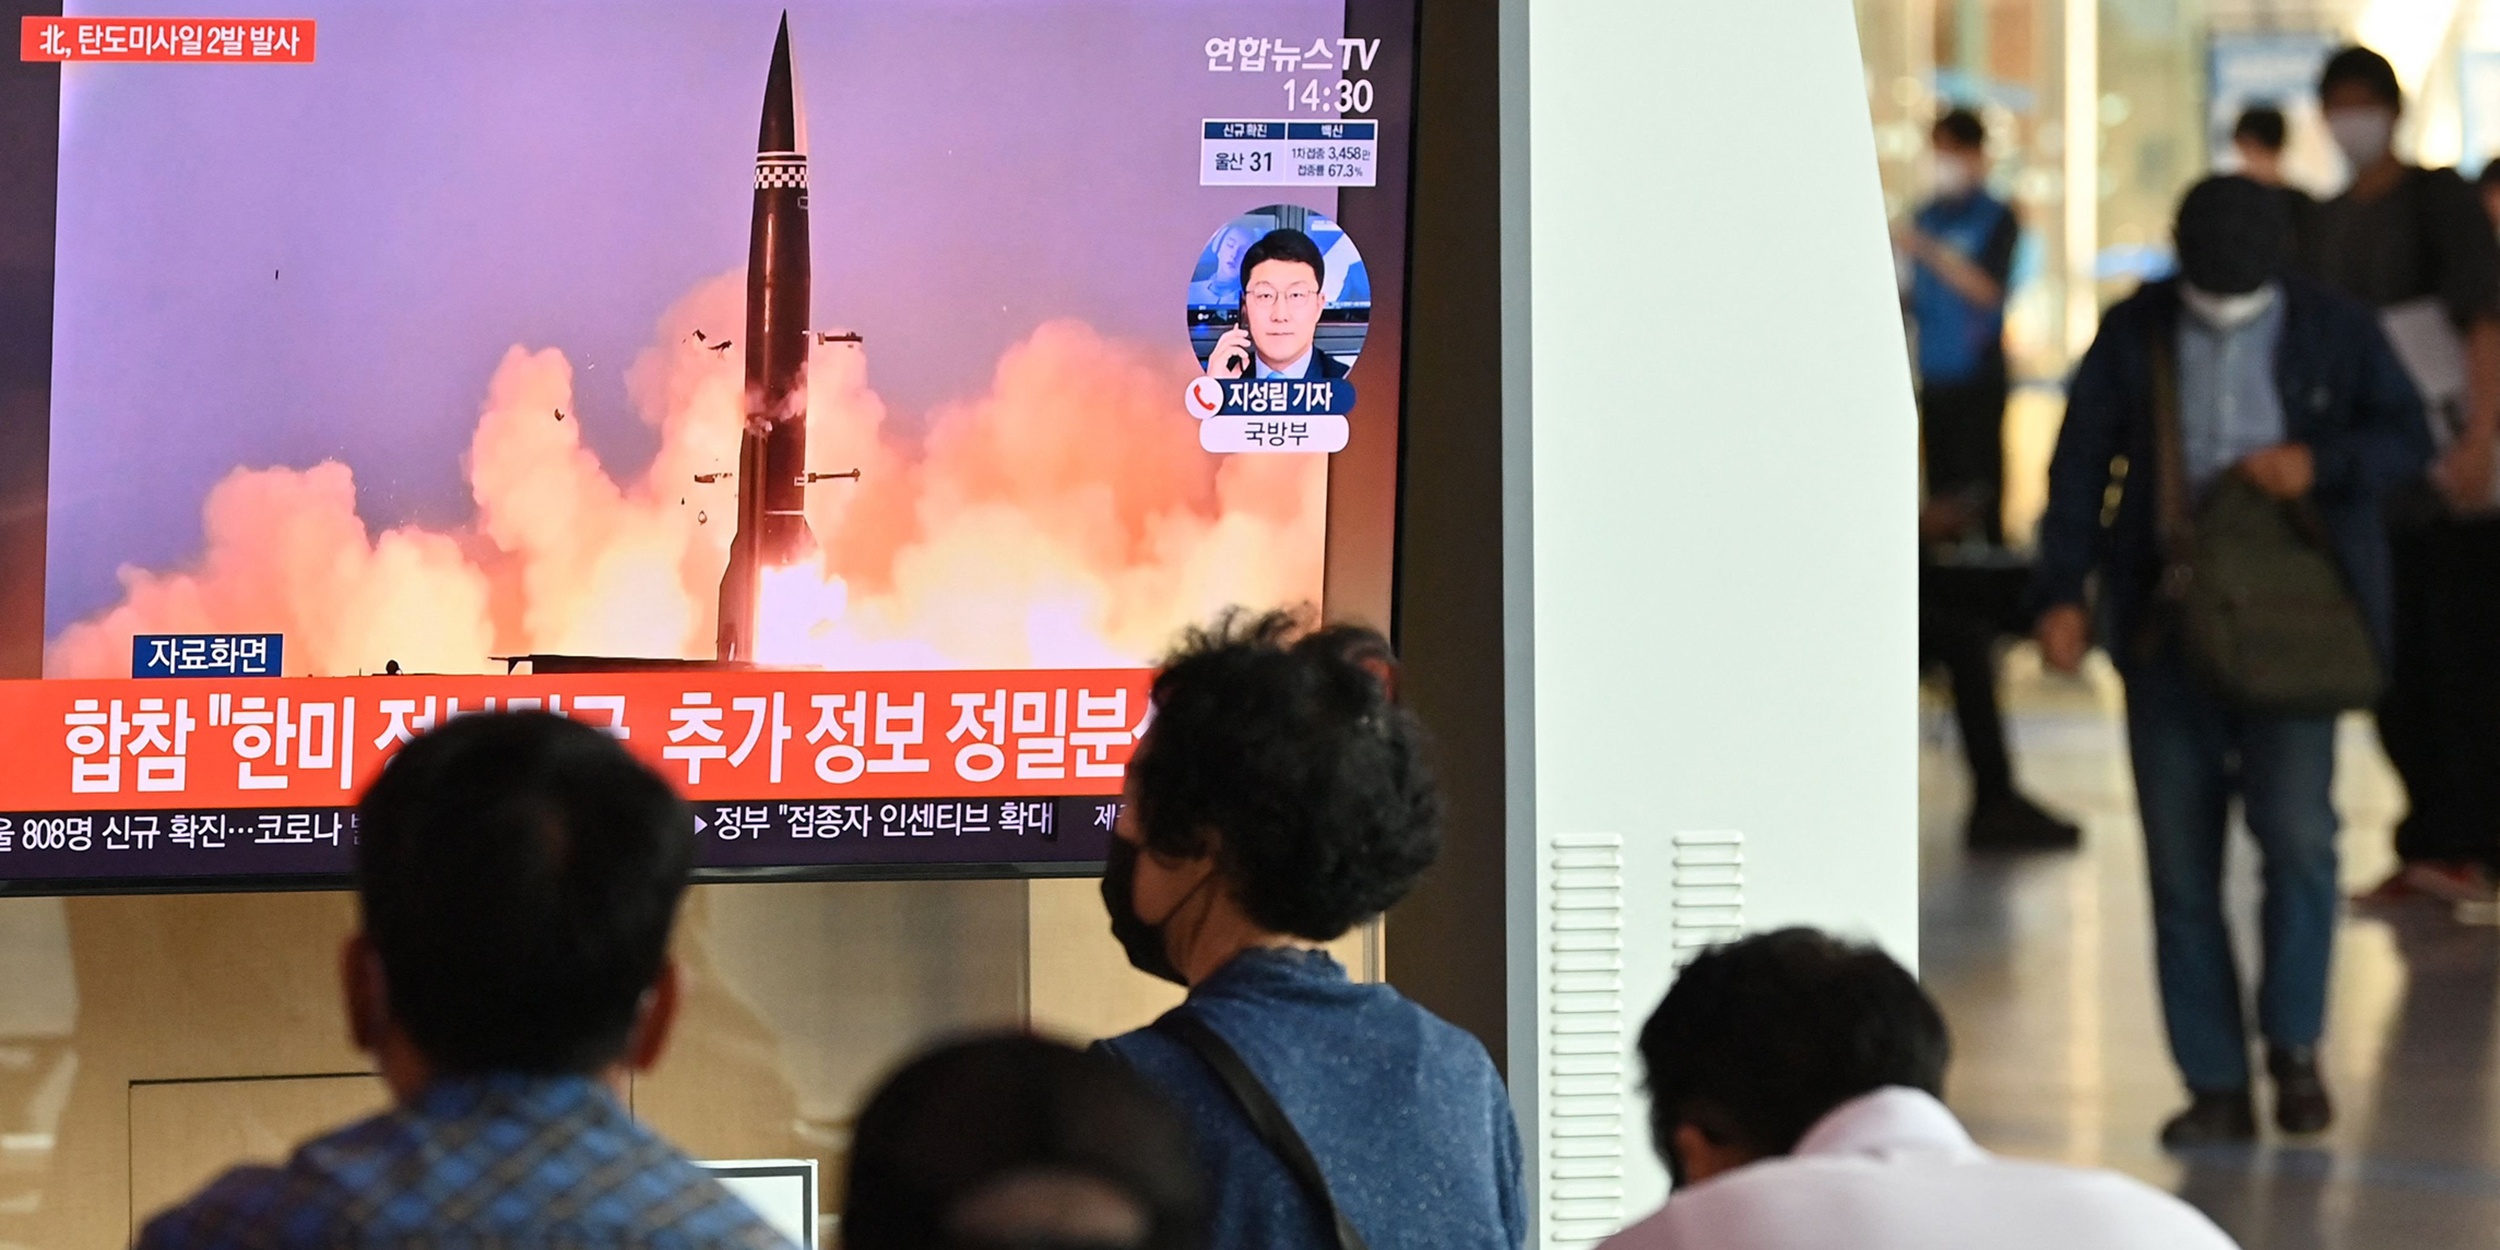 Rival Koreas launch ballistic missile tests within hours of each other